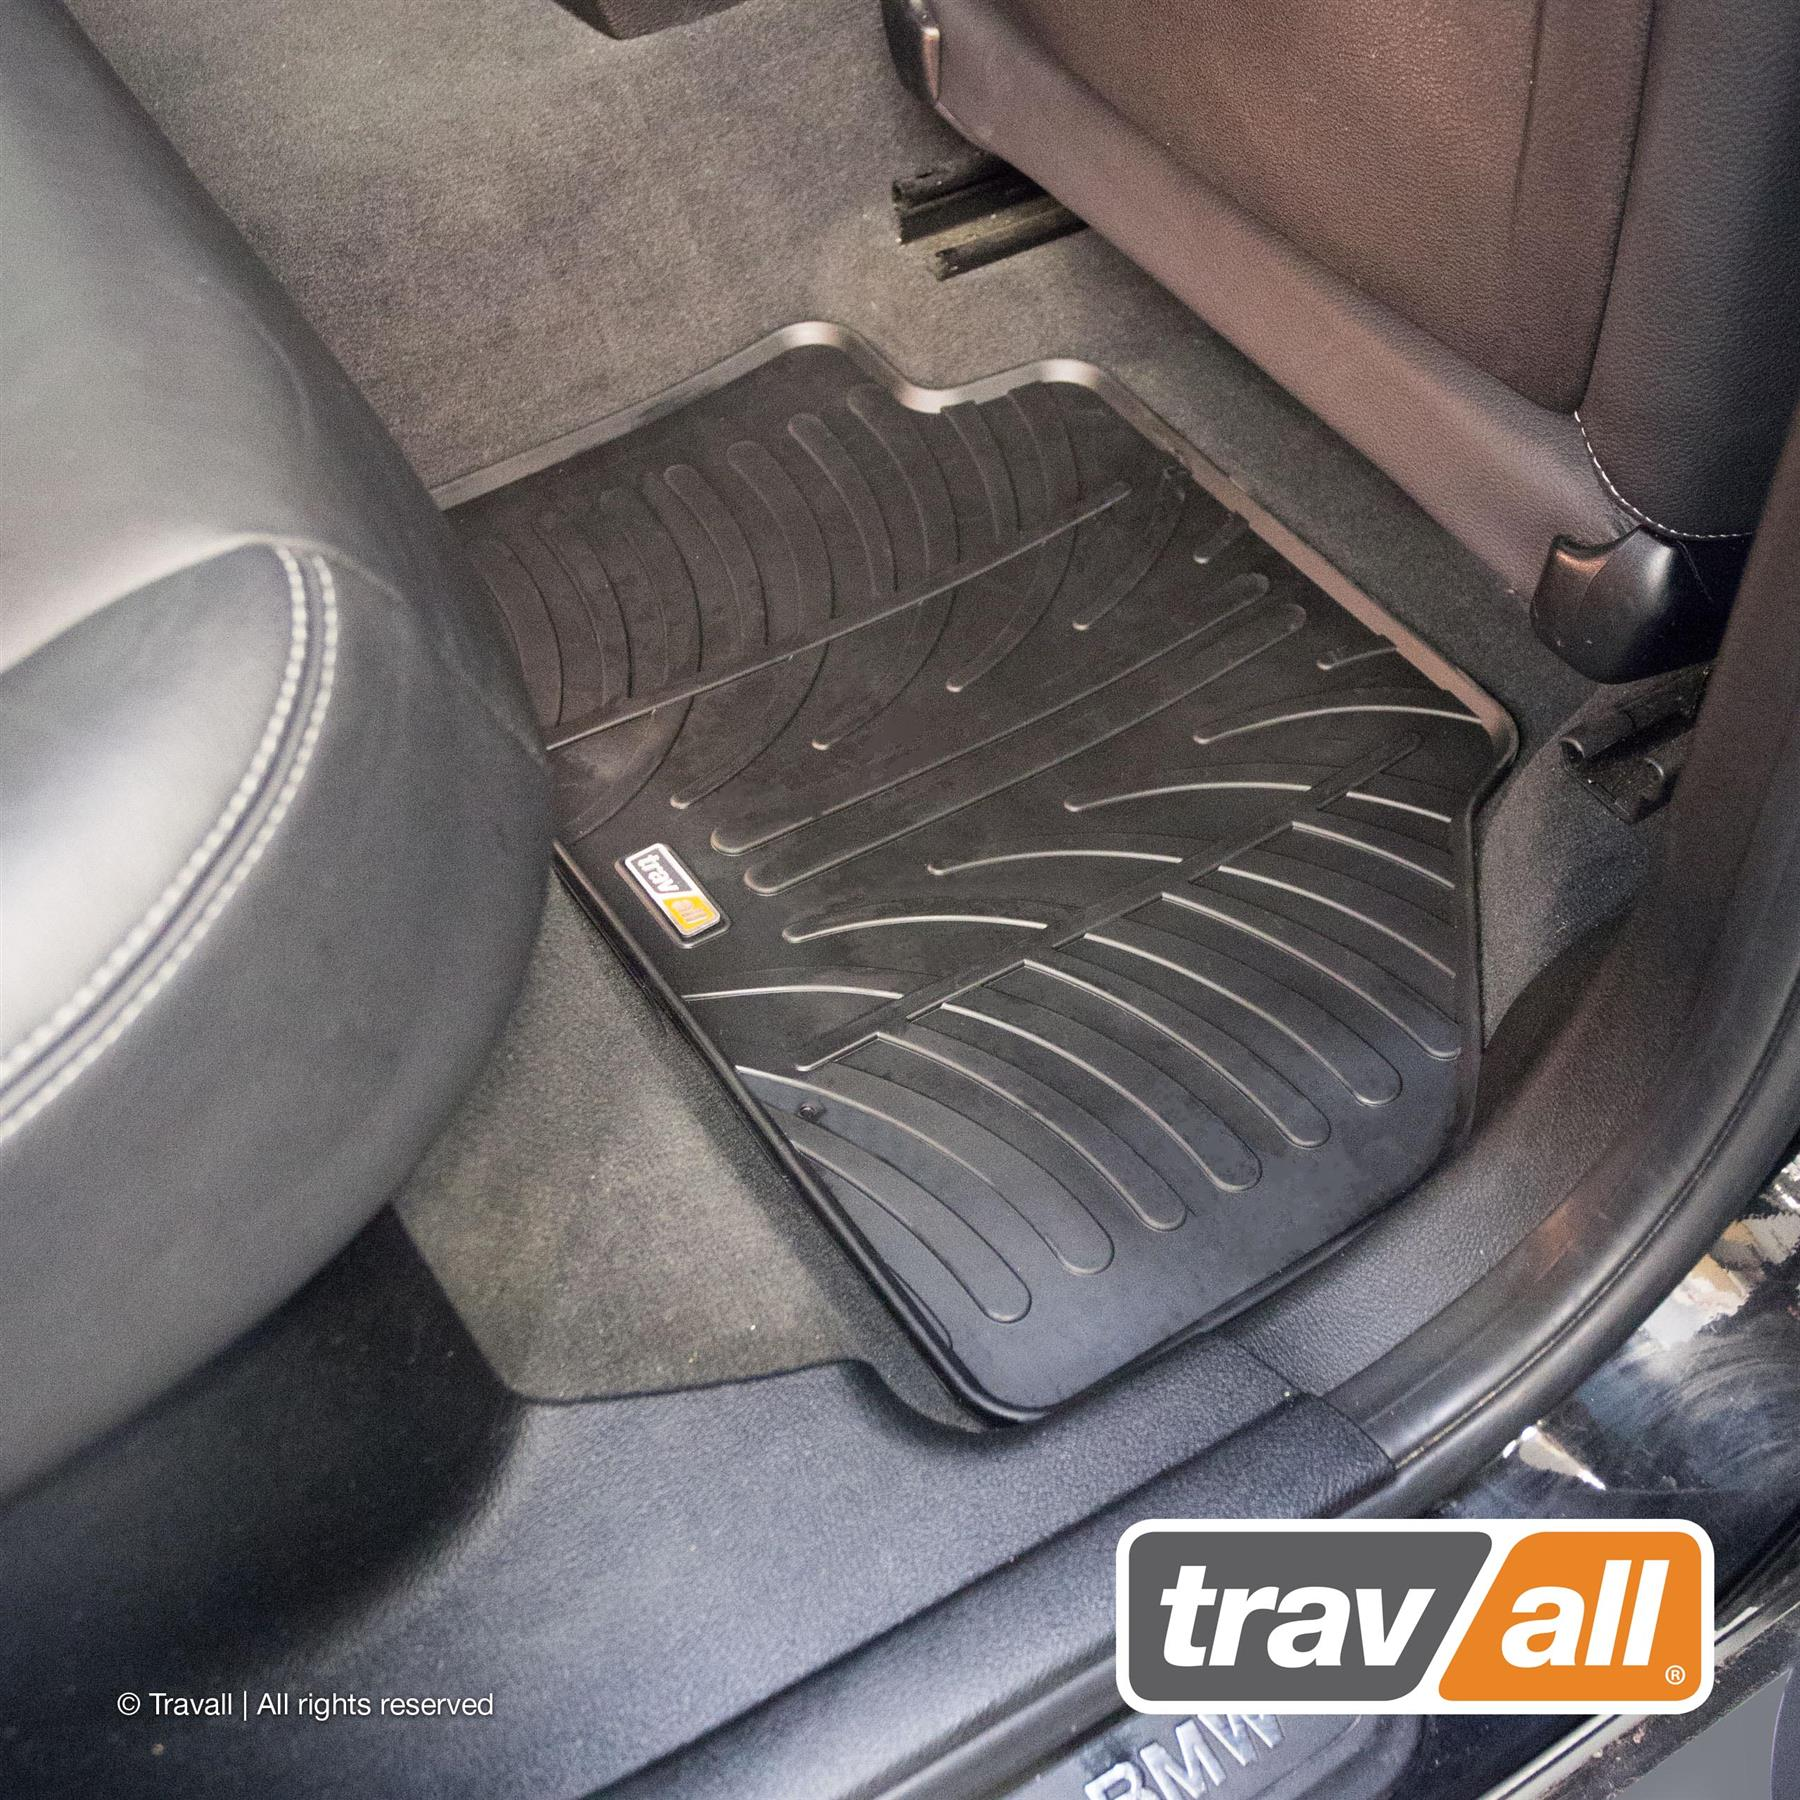 Details about Travall® Rubber Car Mats for BMW X1 2015 > TRM1179R